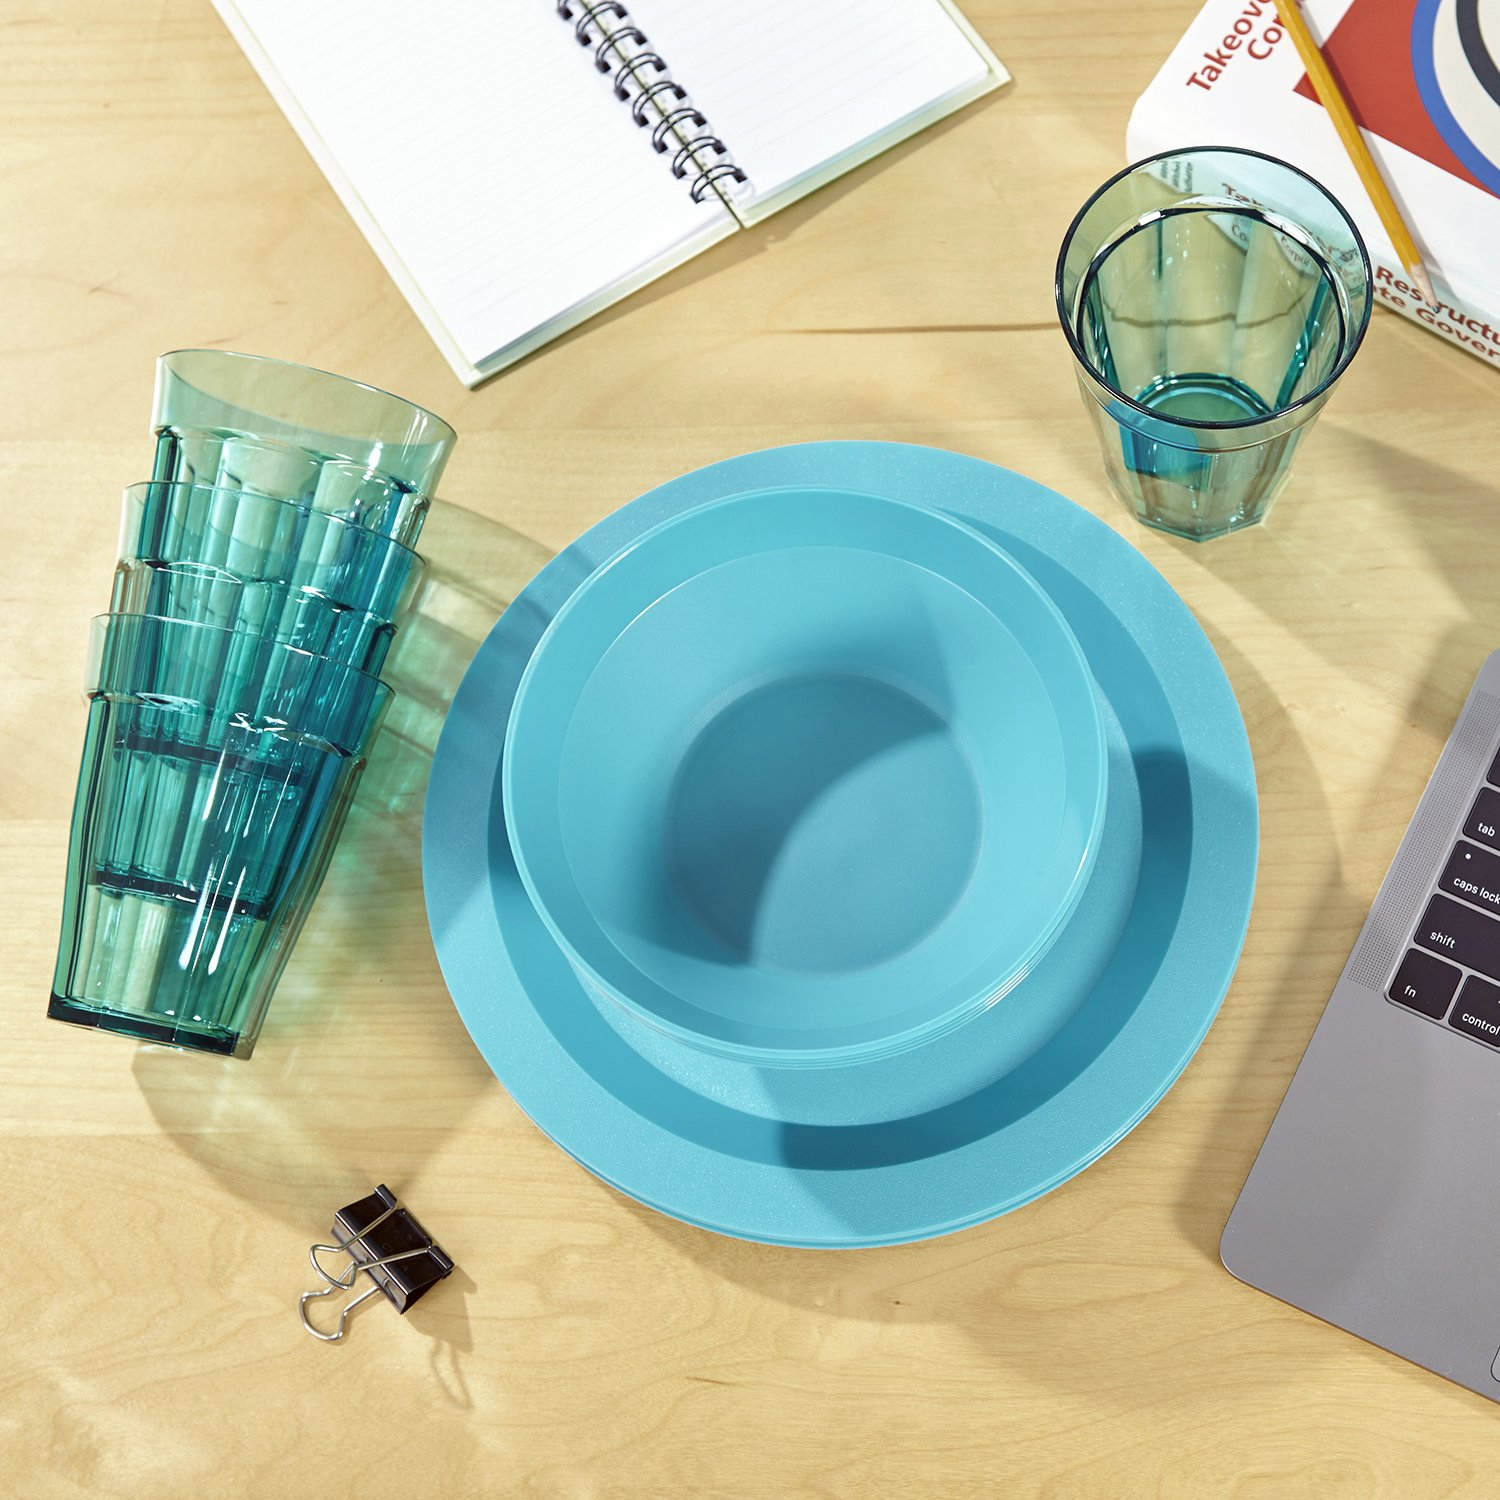 Cambridge Plastic Plate, Bowl and Tumbler Dinnerware | 12-piece set Teal by US Acrylic (Image #2)